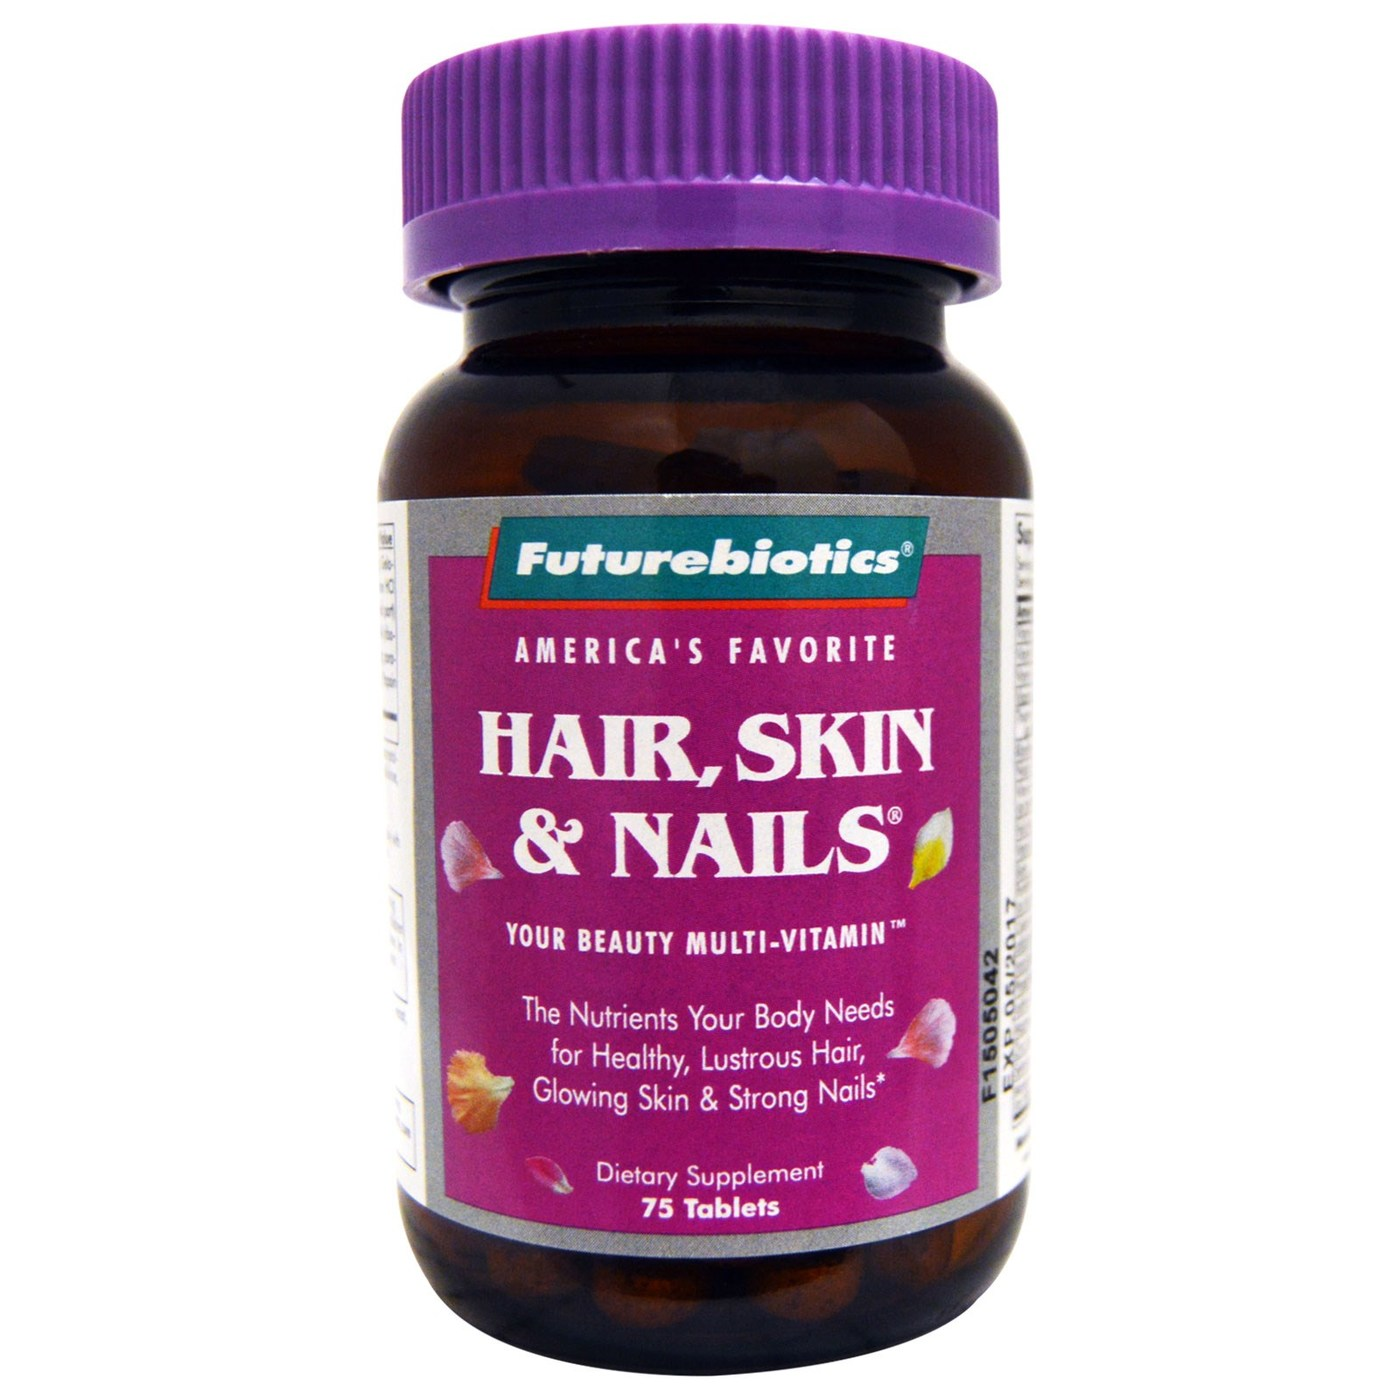 Futurebiotics Hair Skin Nails for Women - 75 Tablets - eVitamins.com